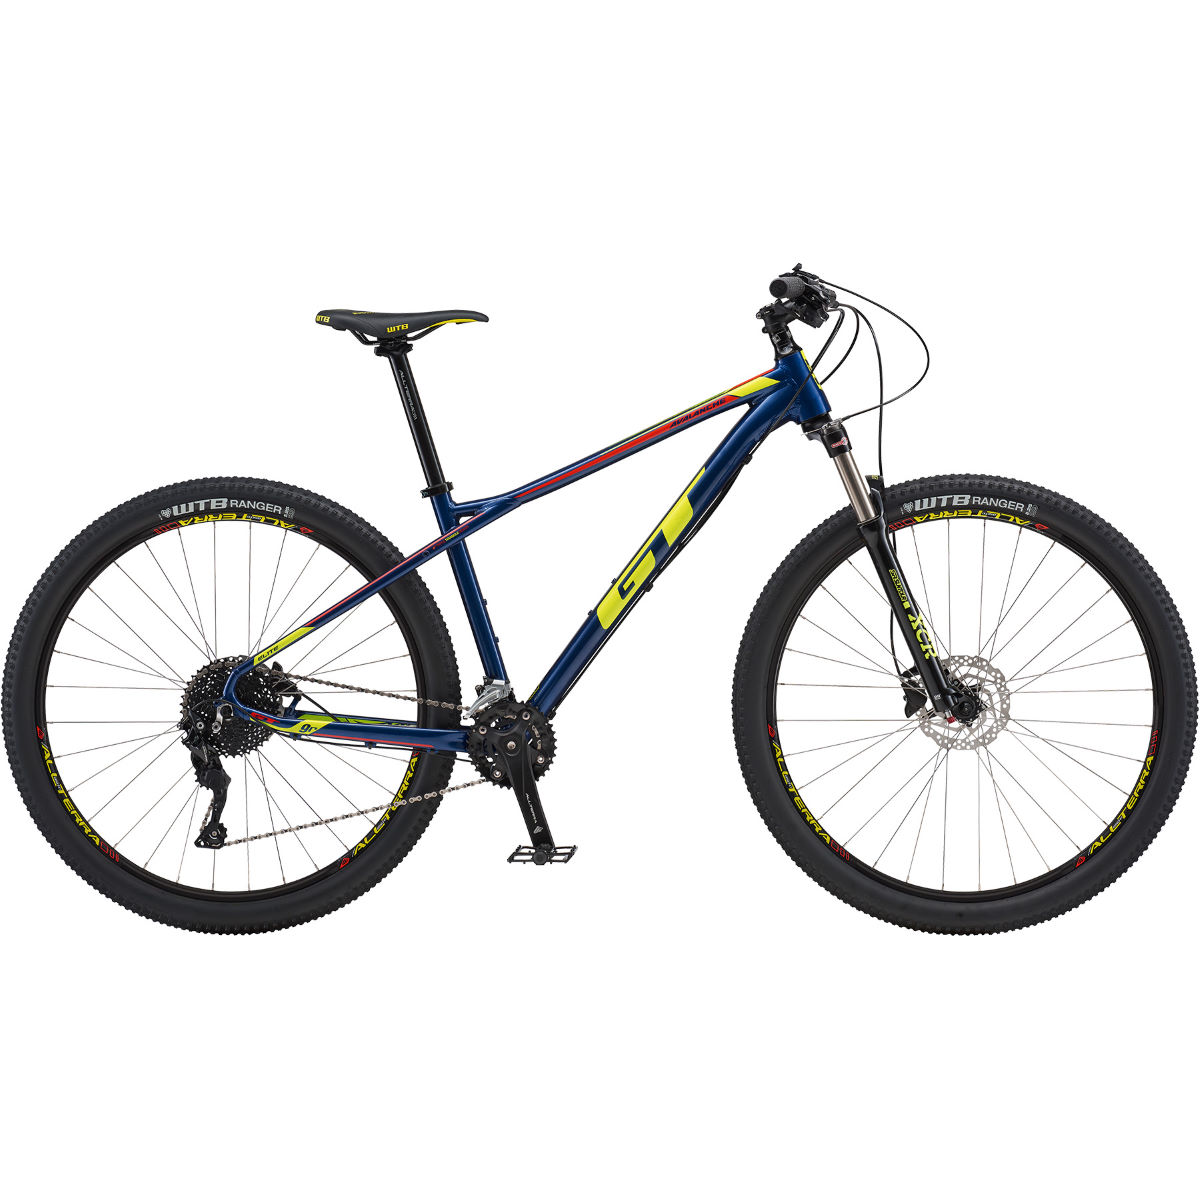 VTT semi-rigide GT Avalanche Elite 29 - Extra Large Stock Bi